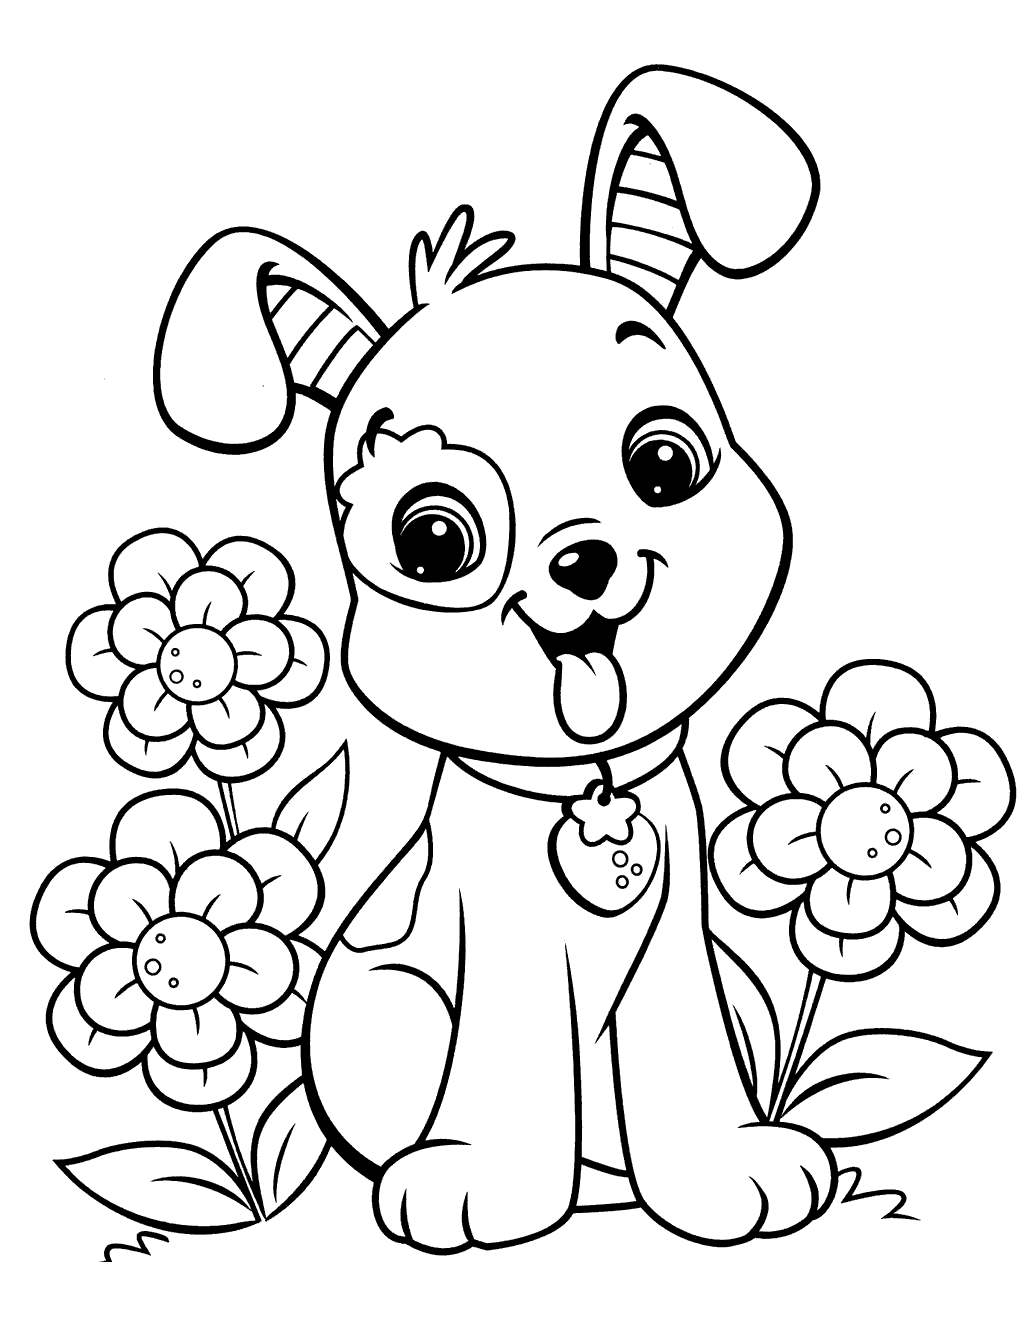 Free Sparky The Fire Dog Coloring Pages Funy Find printable